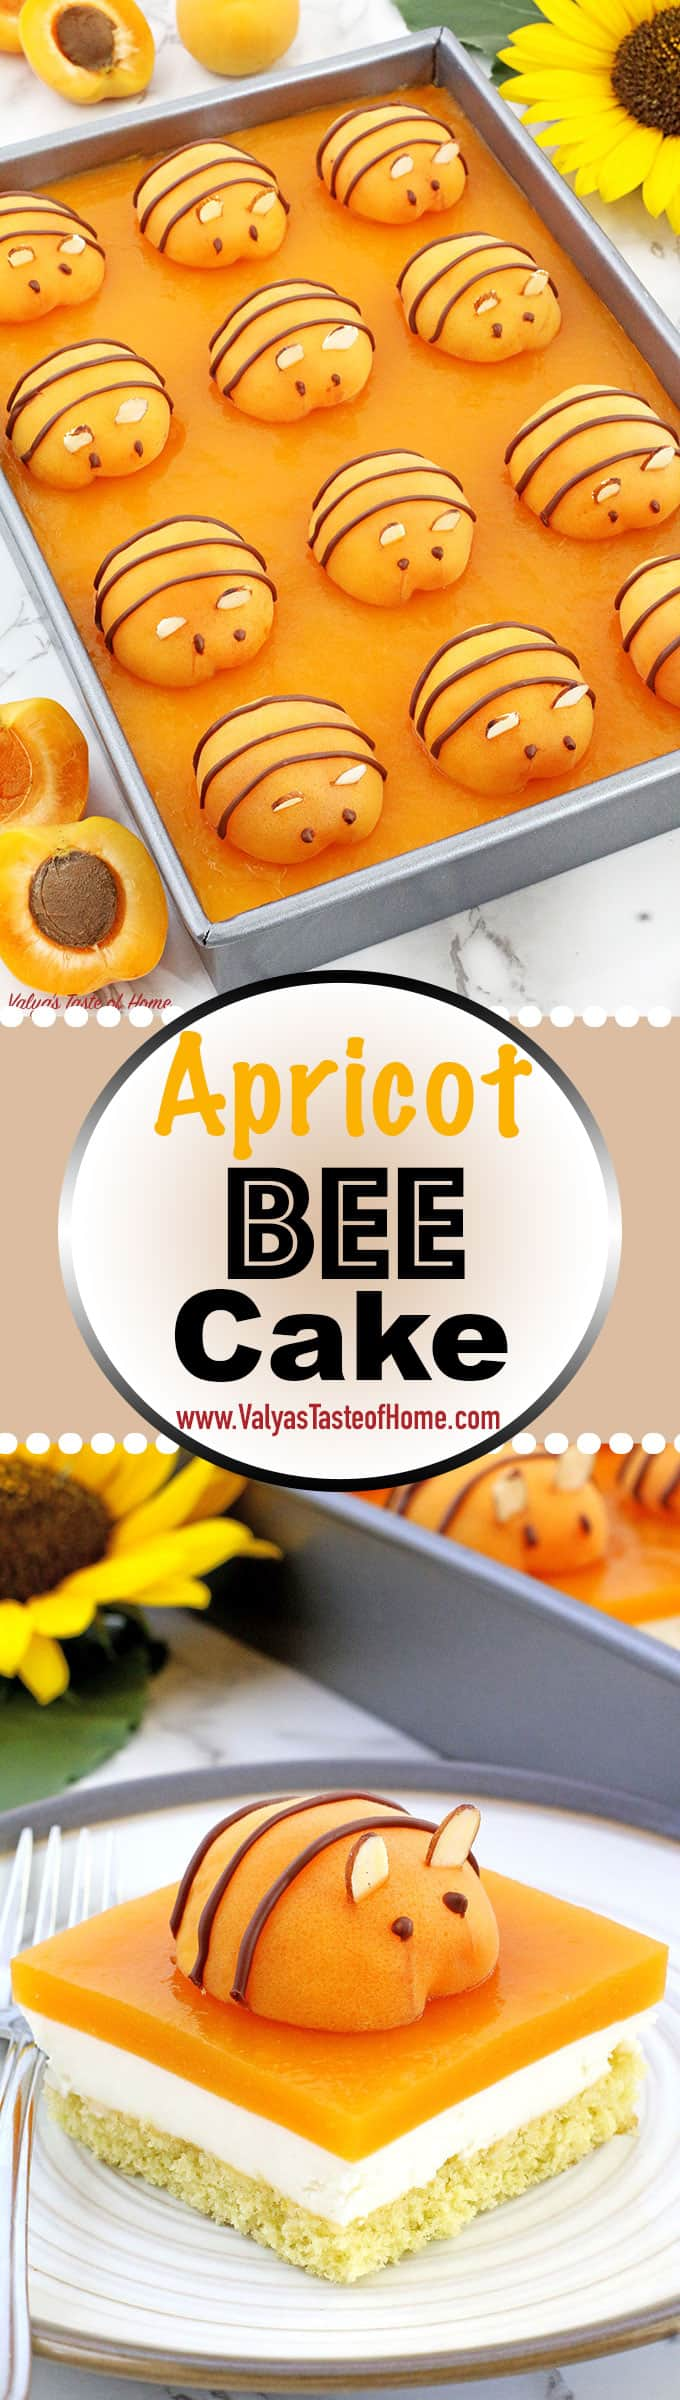 This Apricot Bee Cake Recipe is absolutely incredible! Spongy cake, fluffy cream, and the soft apricot jello give this adorable beehive themed cake a lot of flavors, every bite just melts in your mouth! And that fresh apricot bee not only gives a beauty to each slice of the cake but makes every kid and even an adult drop their jaw and wow! Plus, the more fruit the better! Right? Give it try!